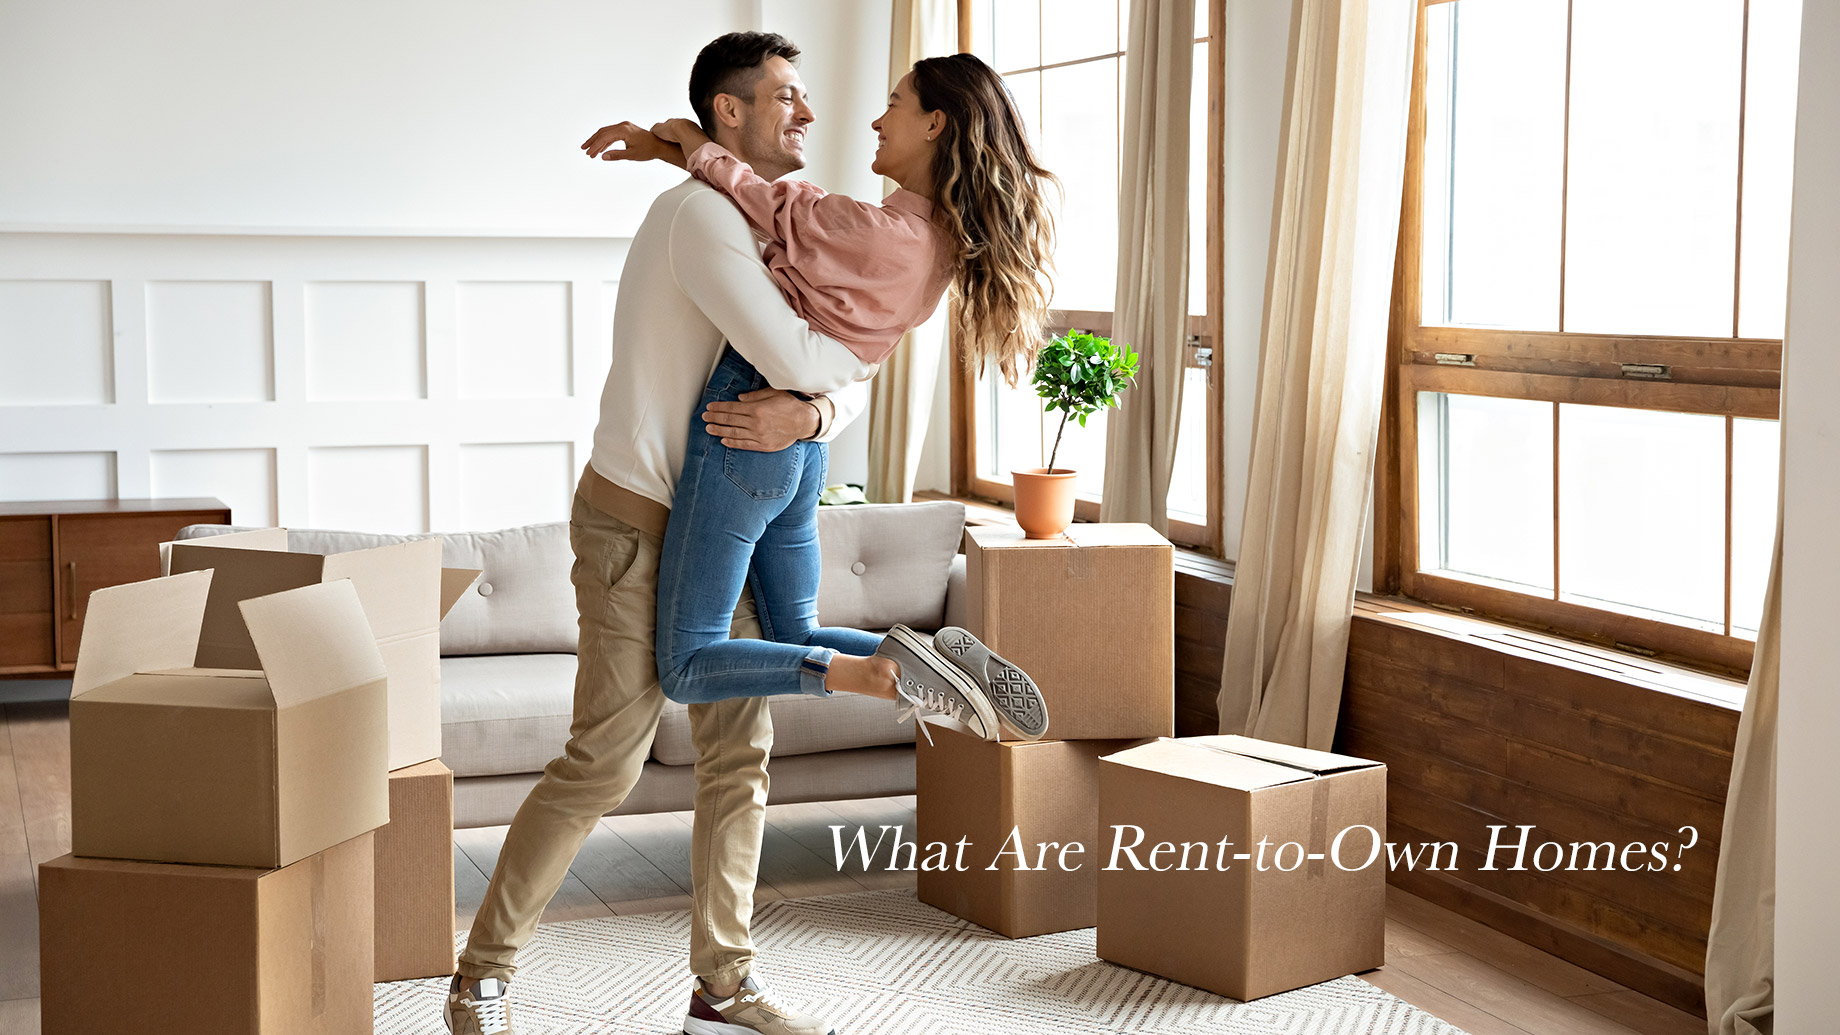 What Are Rent-to-Own Homes?